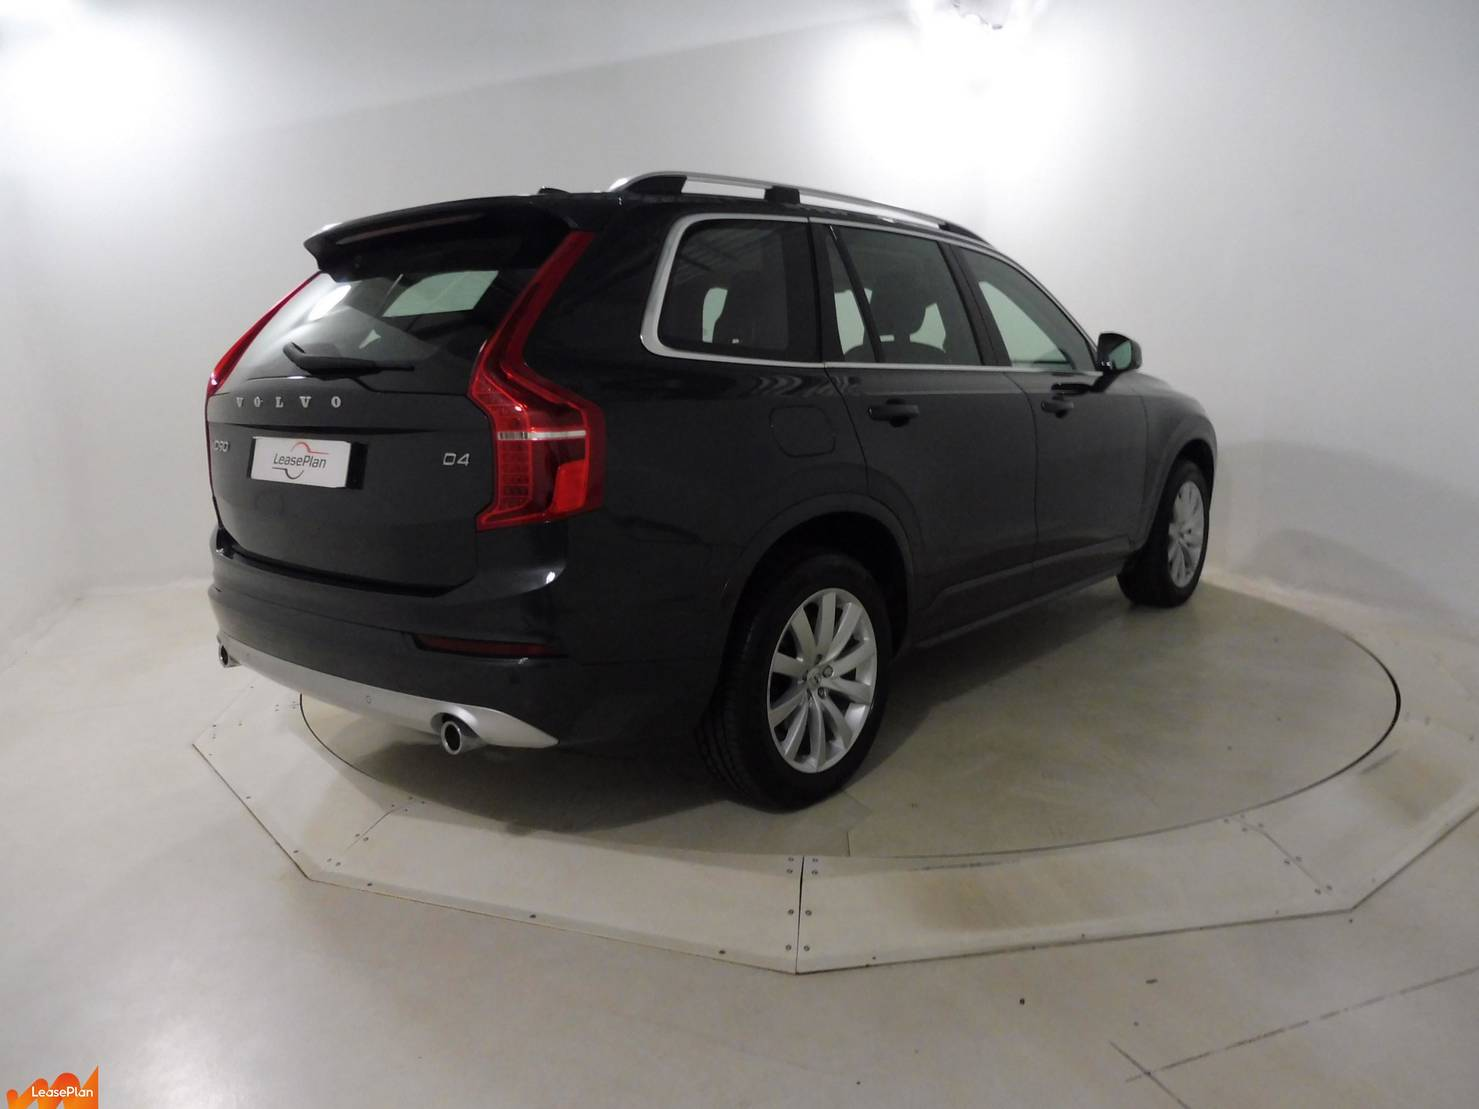 Volvo XC90 D4 190 ch Geartronic 7pl, Momentum detail2